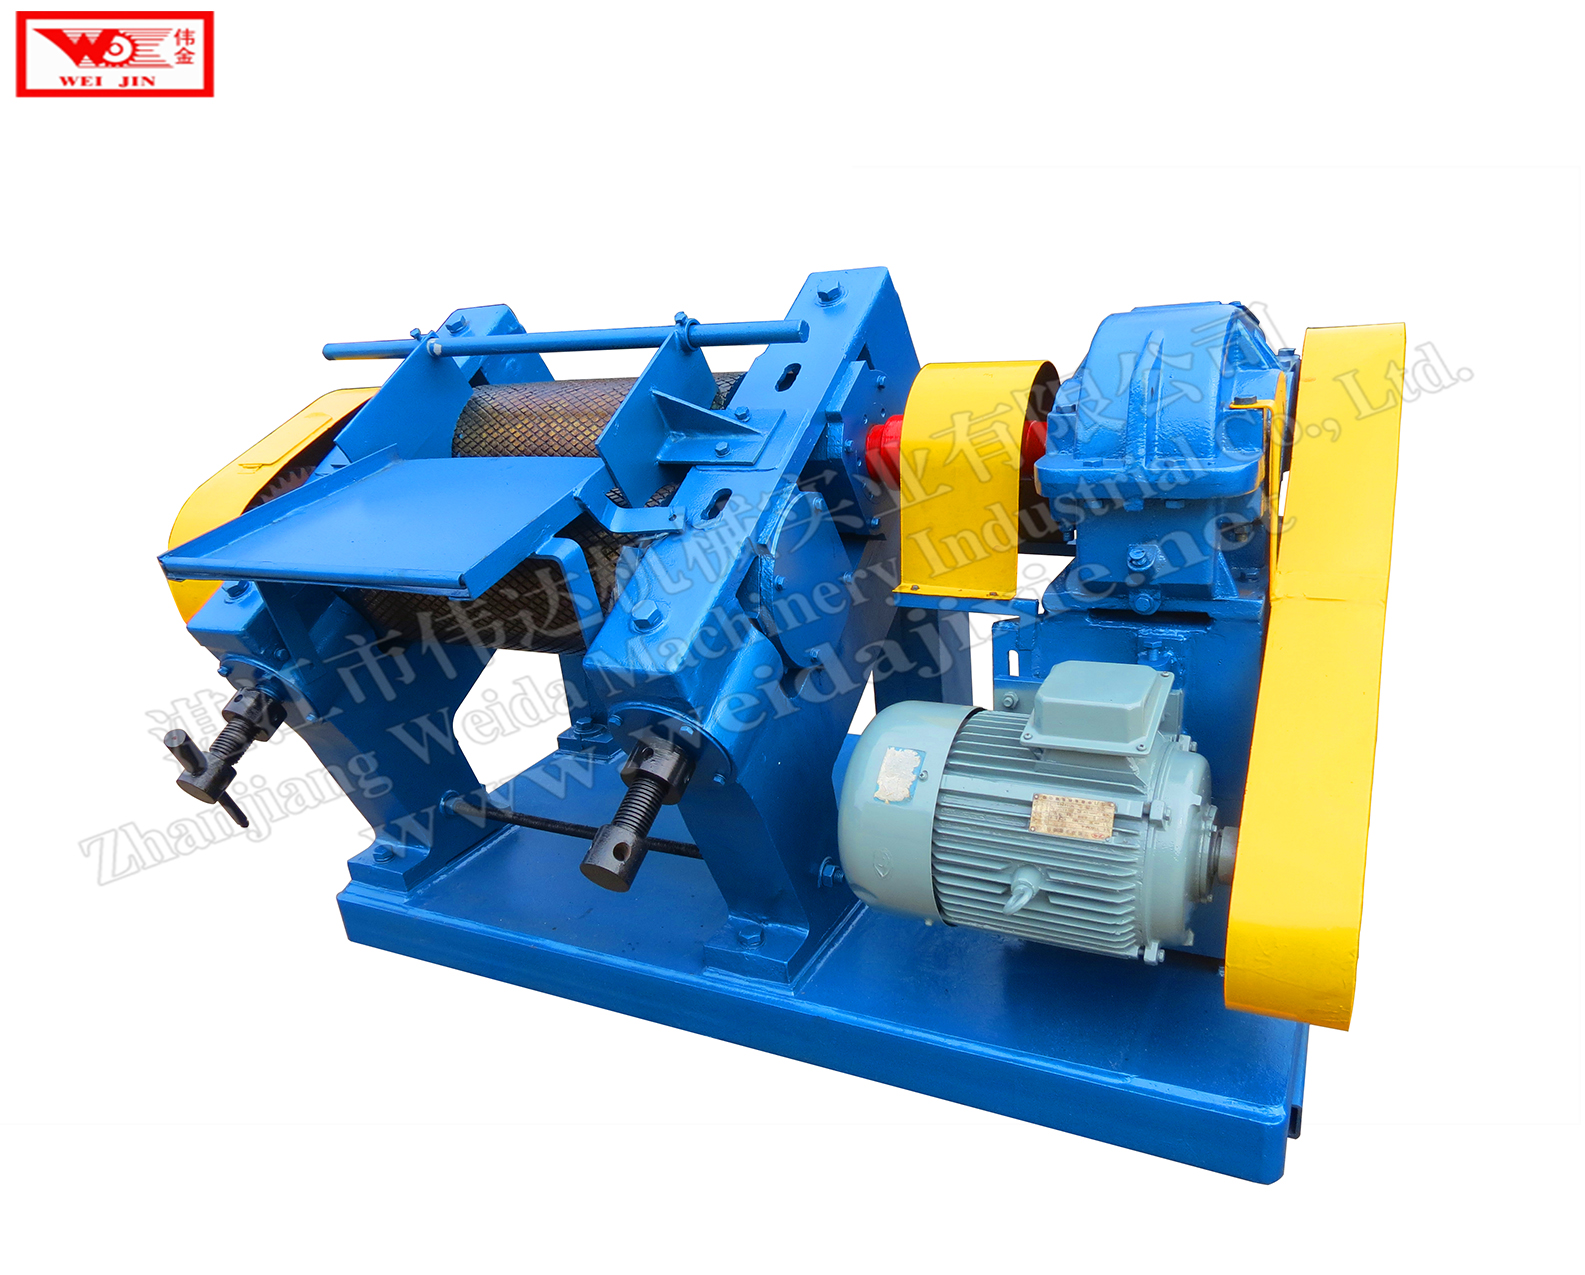 Mud rubber cleaning creper machine